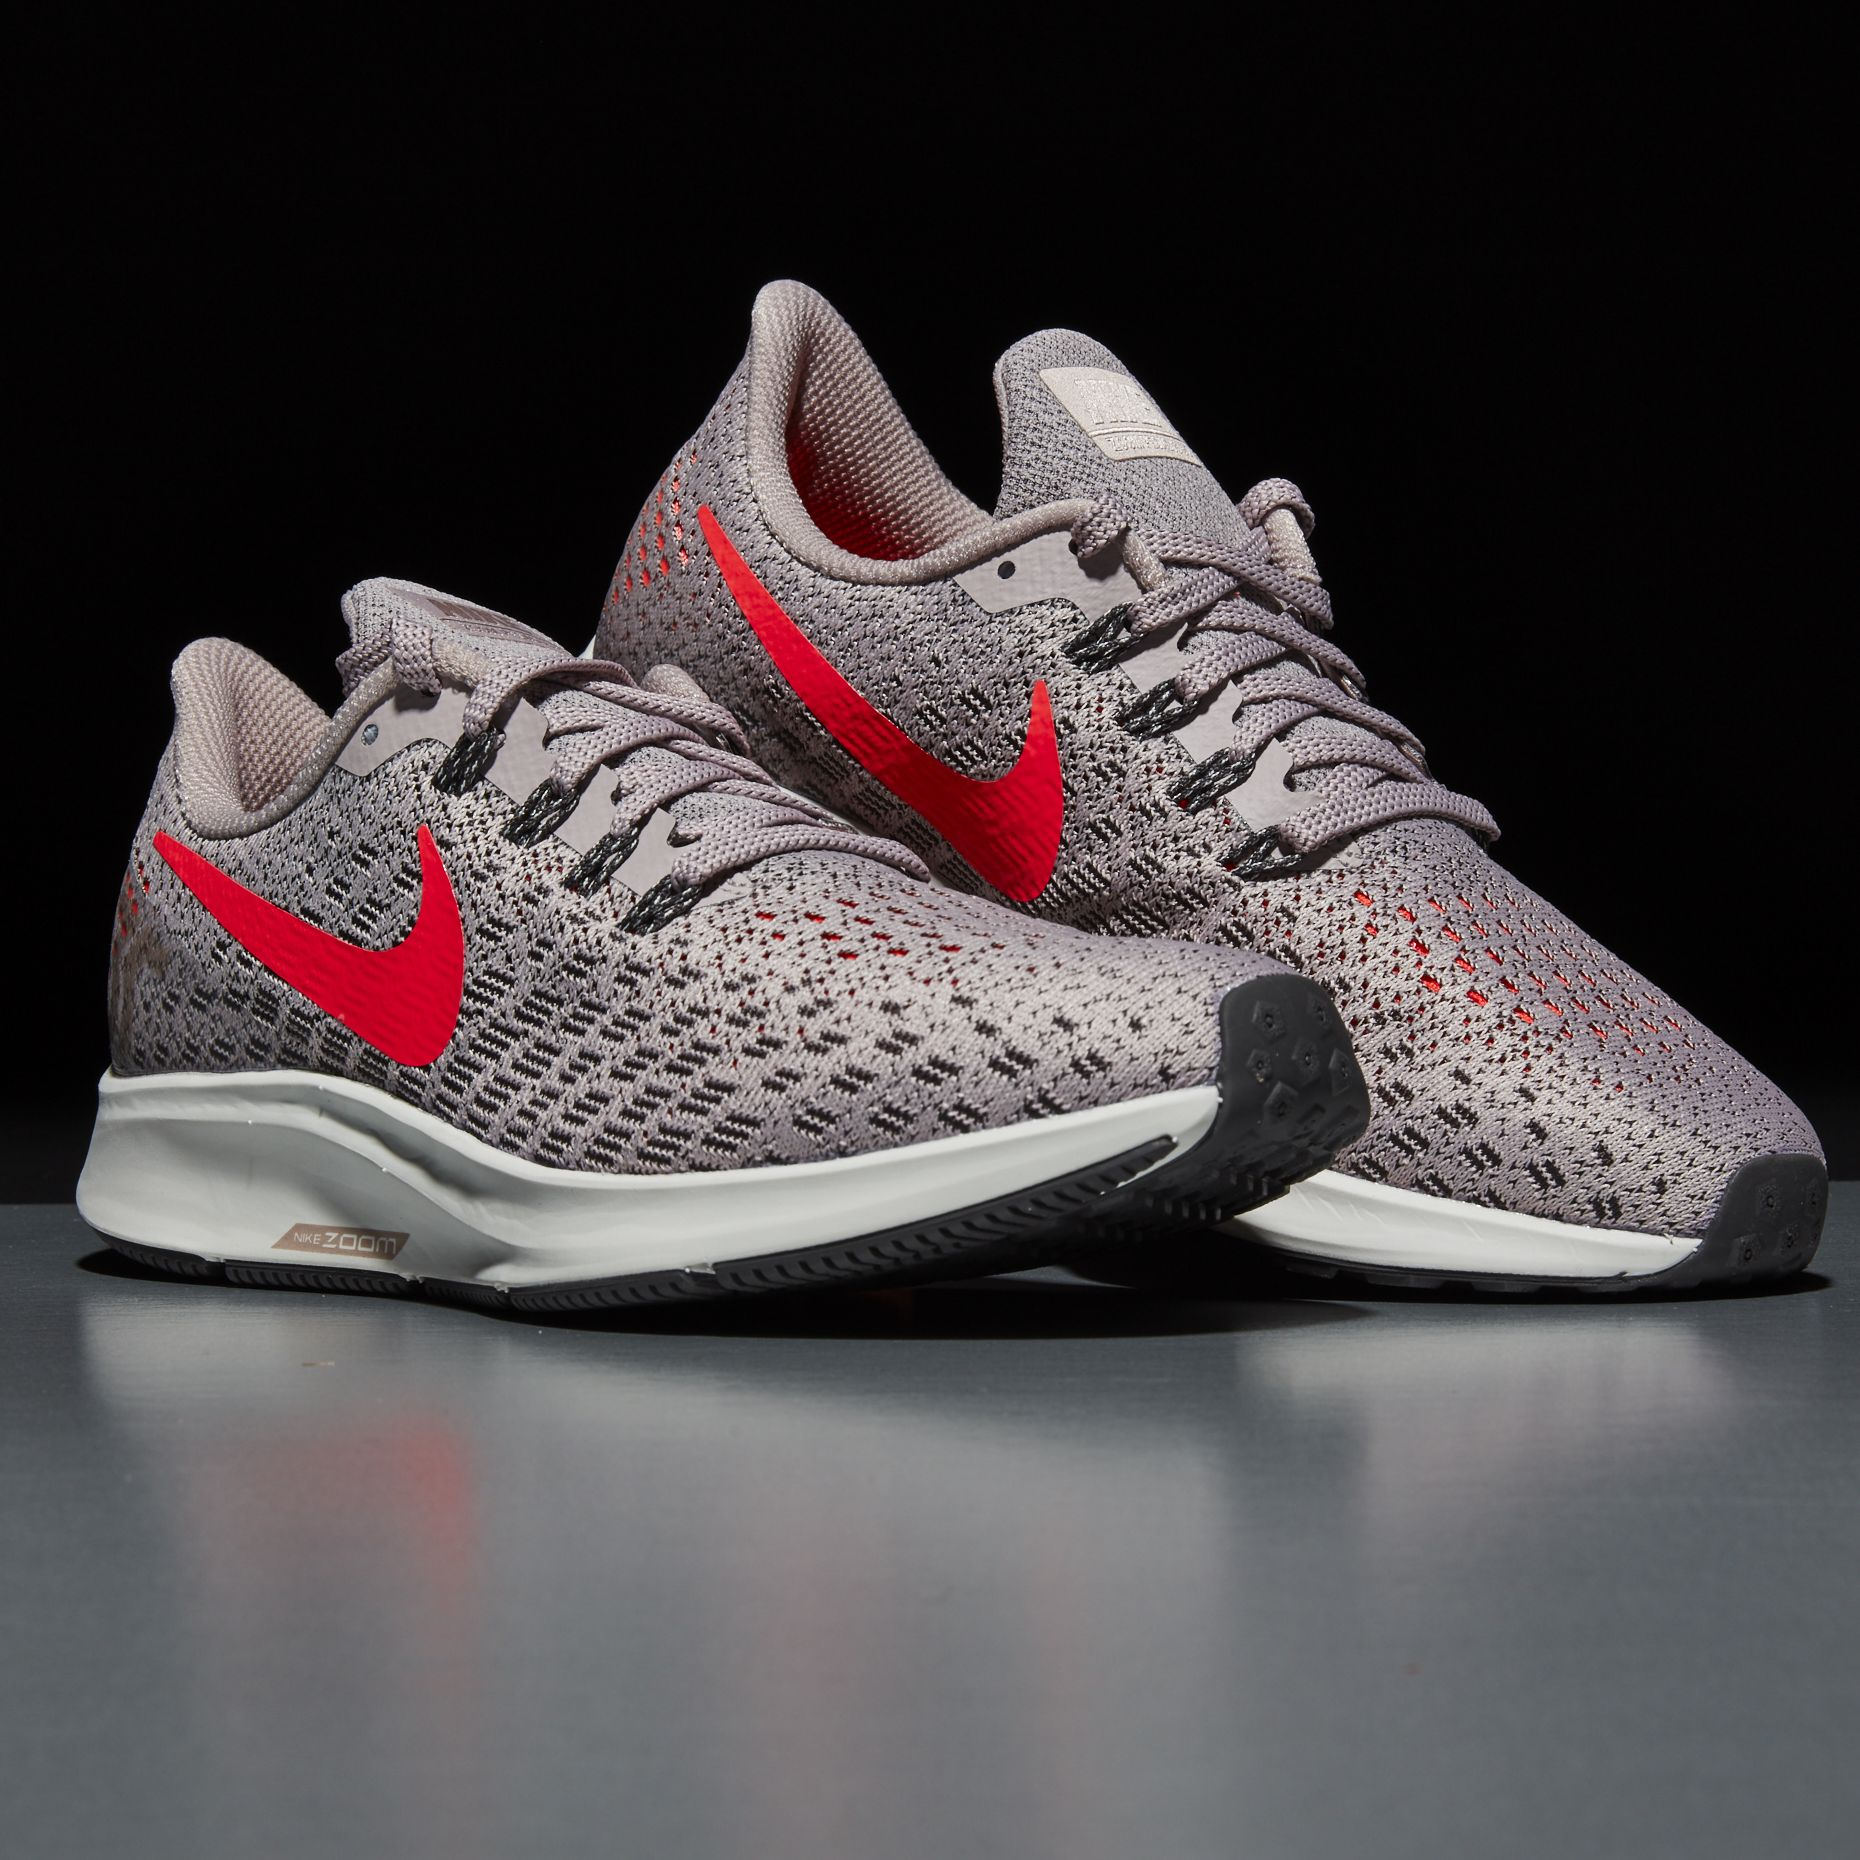 The Nike Air Zoom Pegasus 35 Is 40% off Right Now